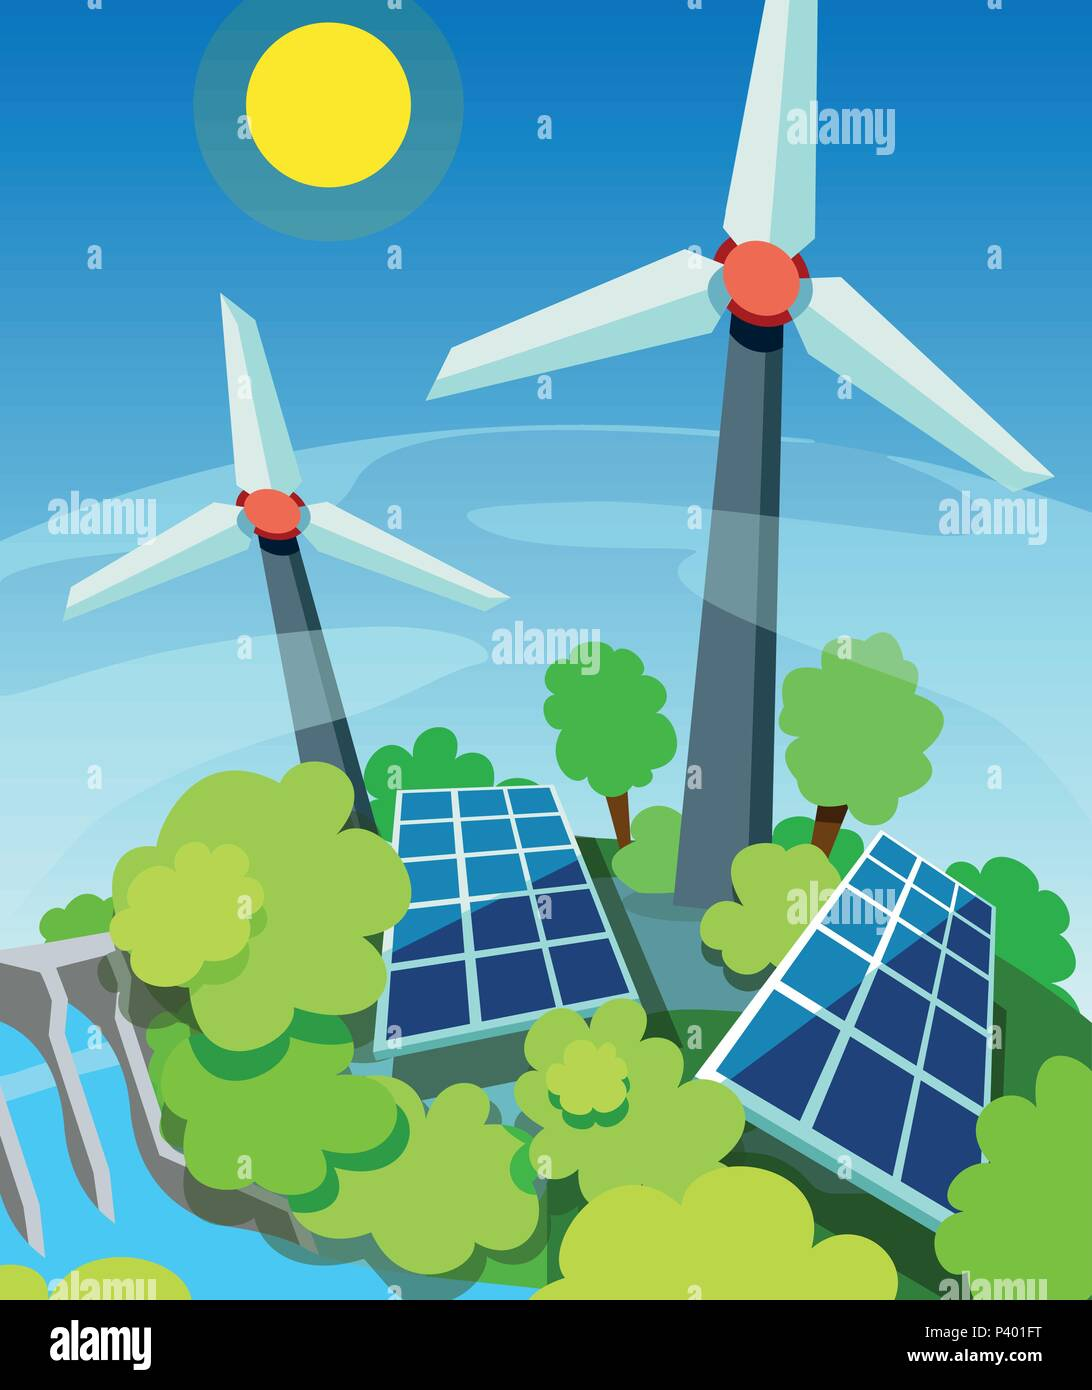 Green energy. Solar panels, wind generators and hydroelectric station. Eco friendly technology concept - Stock Vector